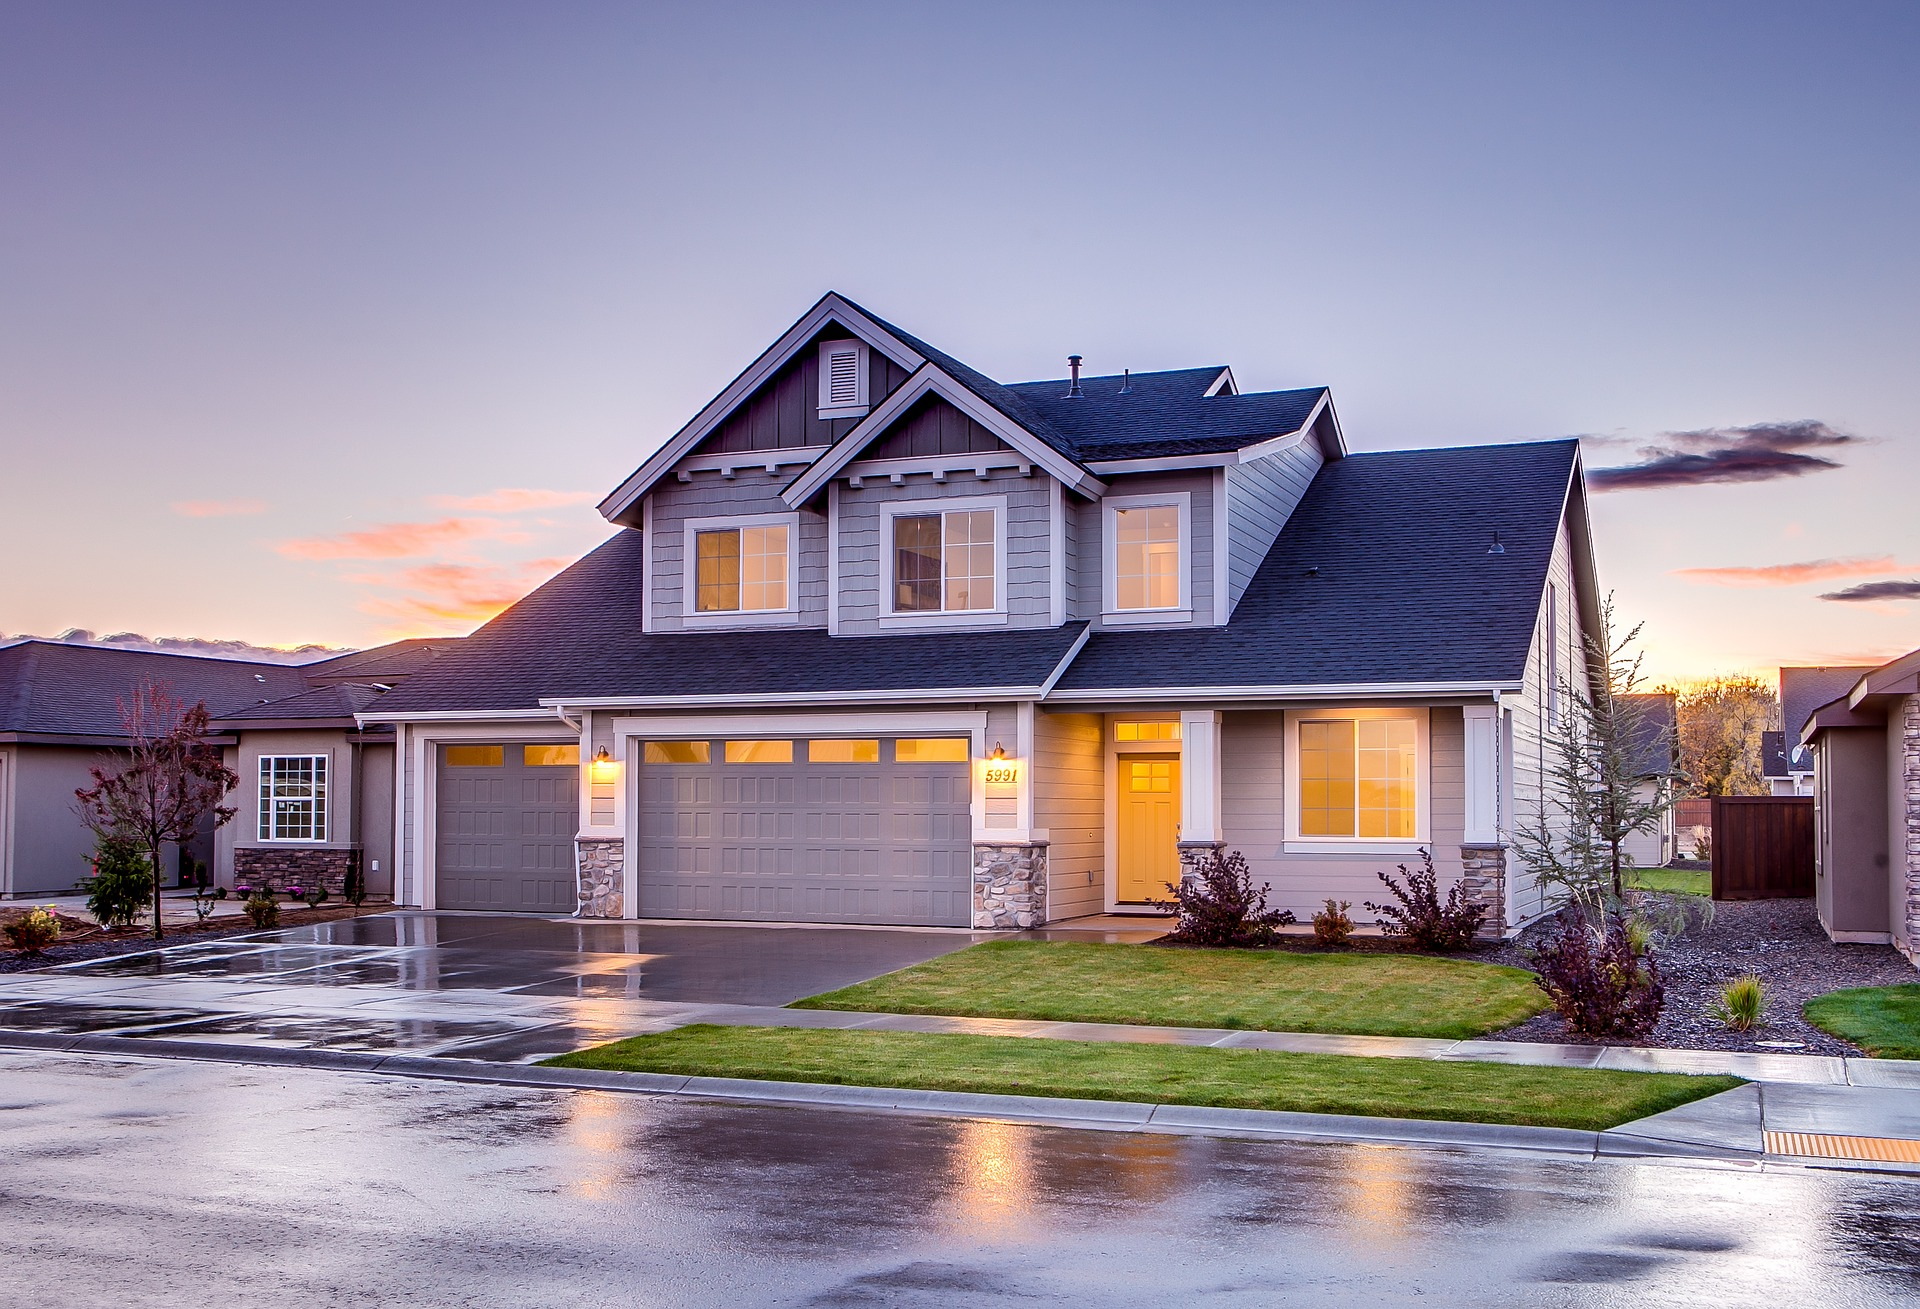 Read Article: What You Need To Consider When Planning a Driveway